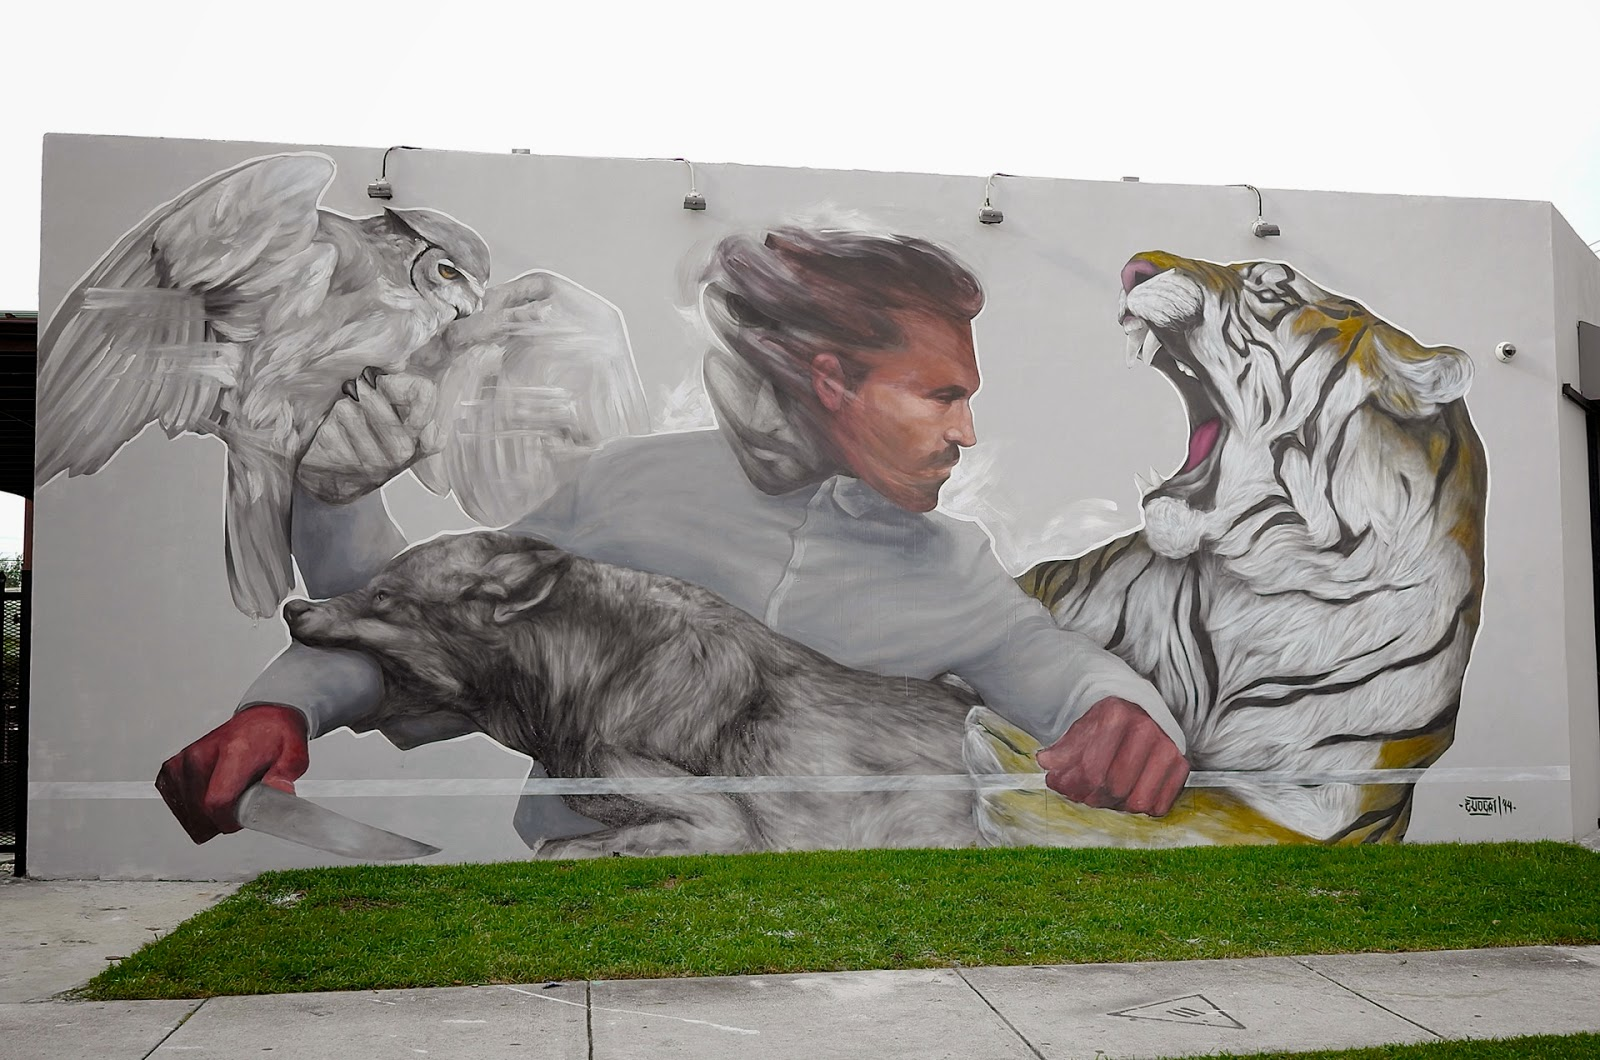 Evoca1 is back in Florida where he spent the last few days working on this new piece somewhere on the streets of Miami.